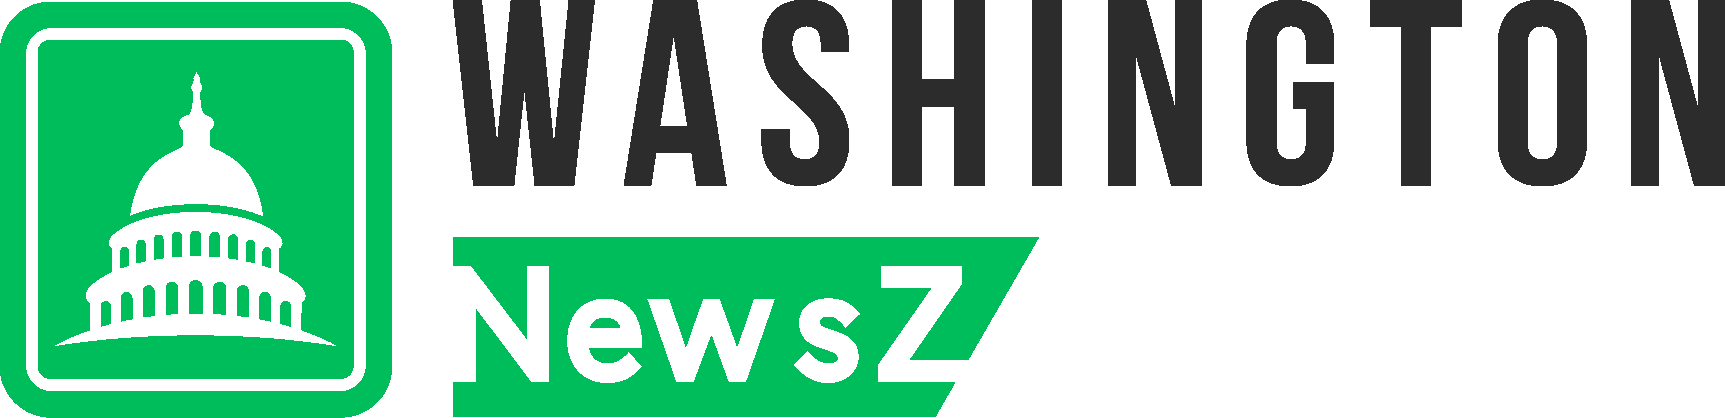 WashingtonNewsZ